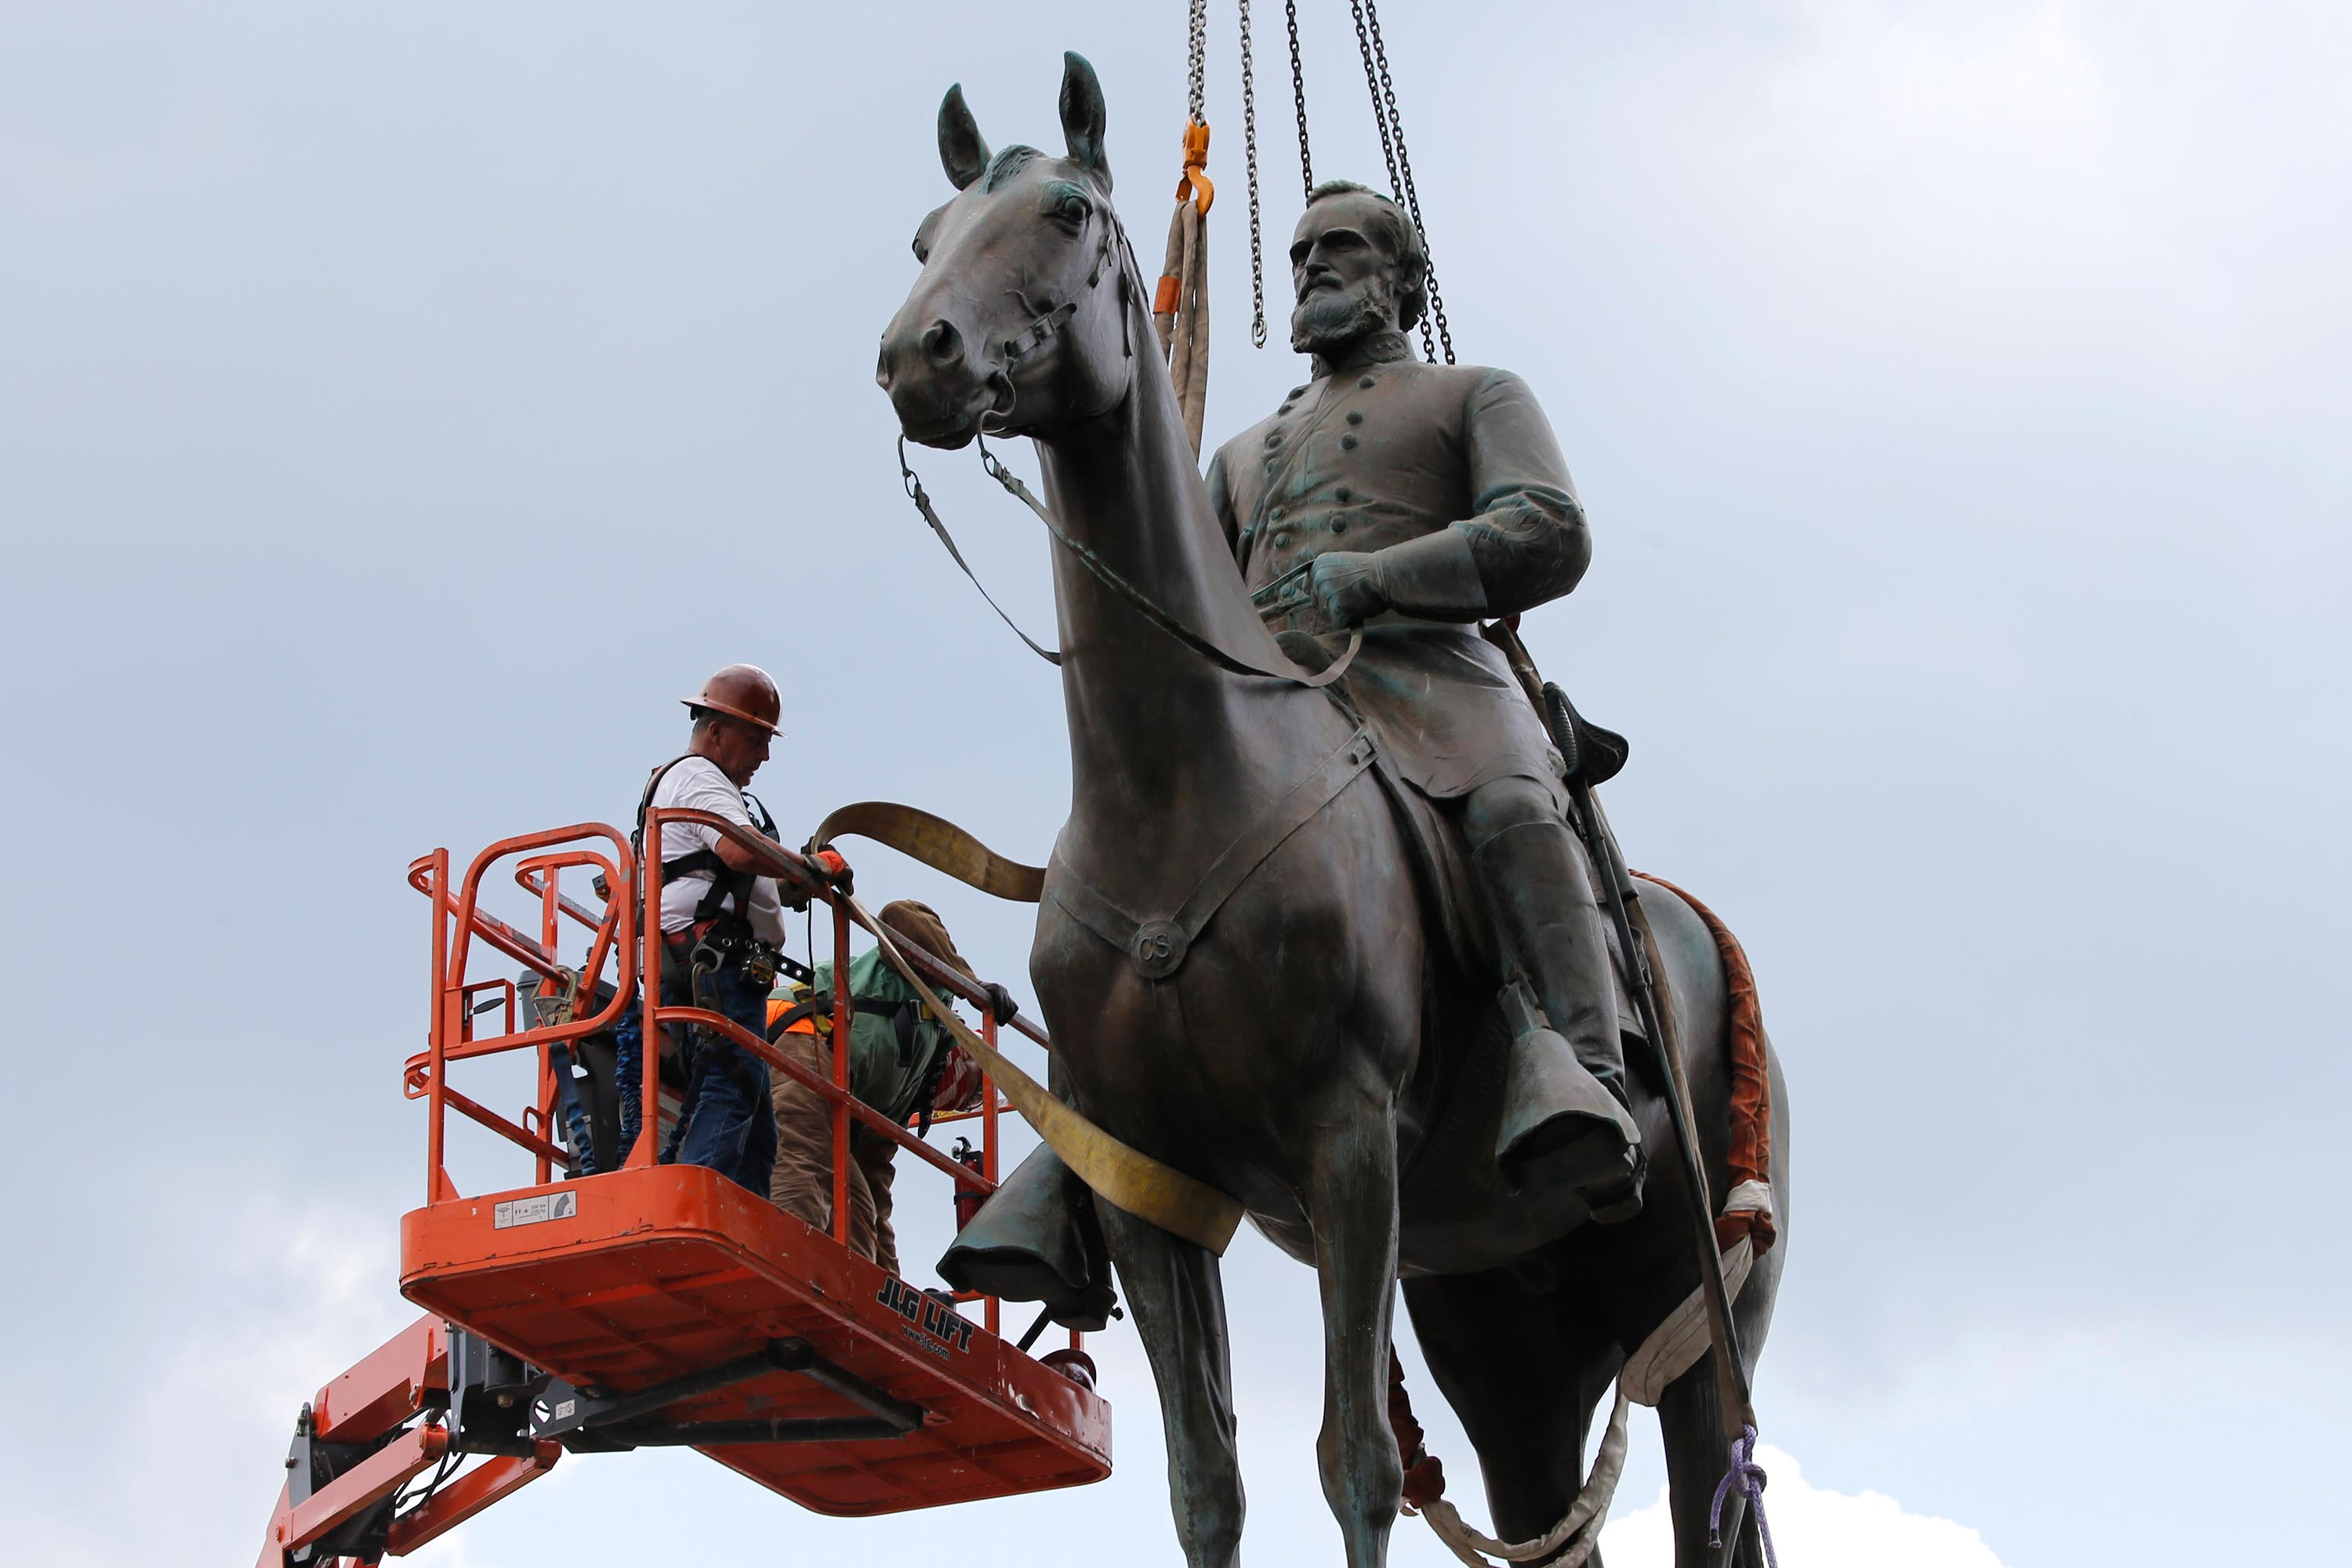 Richmond mayor invokes emergency powers to remove Confederate statues from city